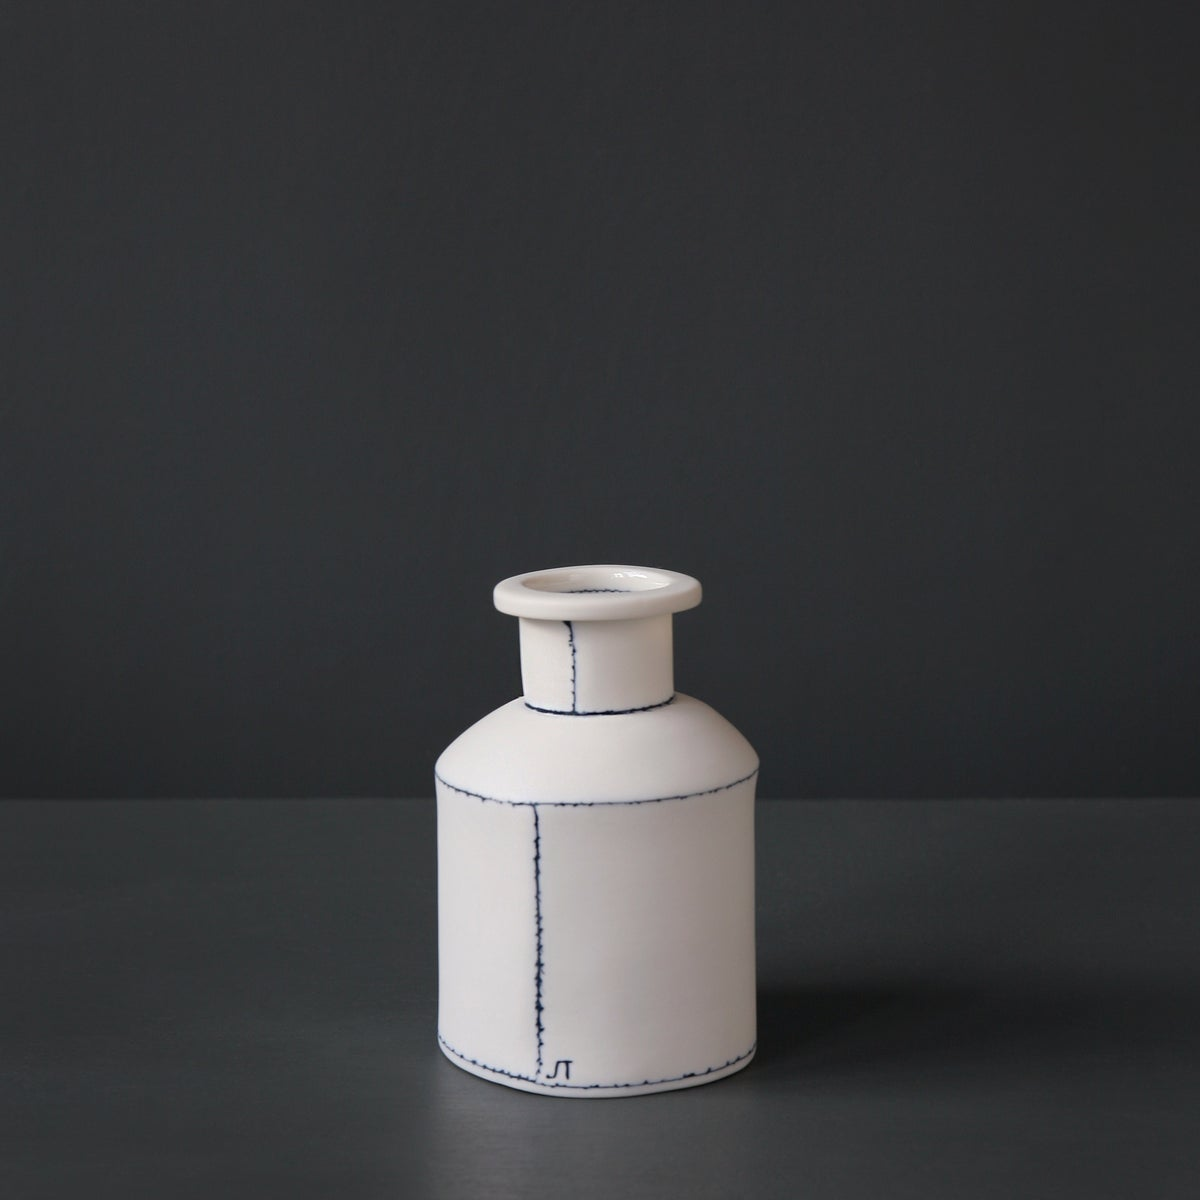 Image of Small 'Apothecary' Bottle by Jessica Thorn.